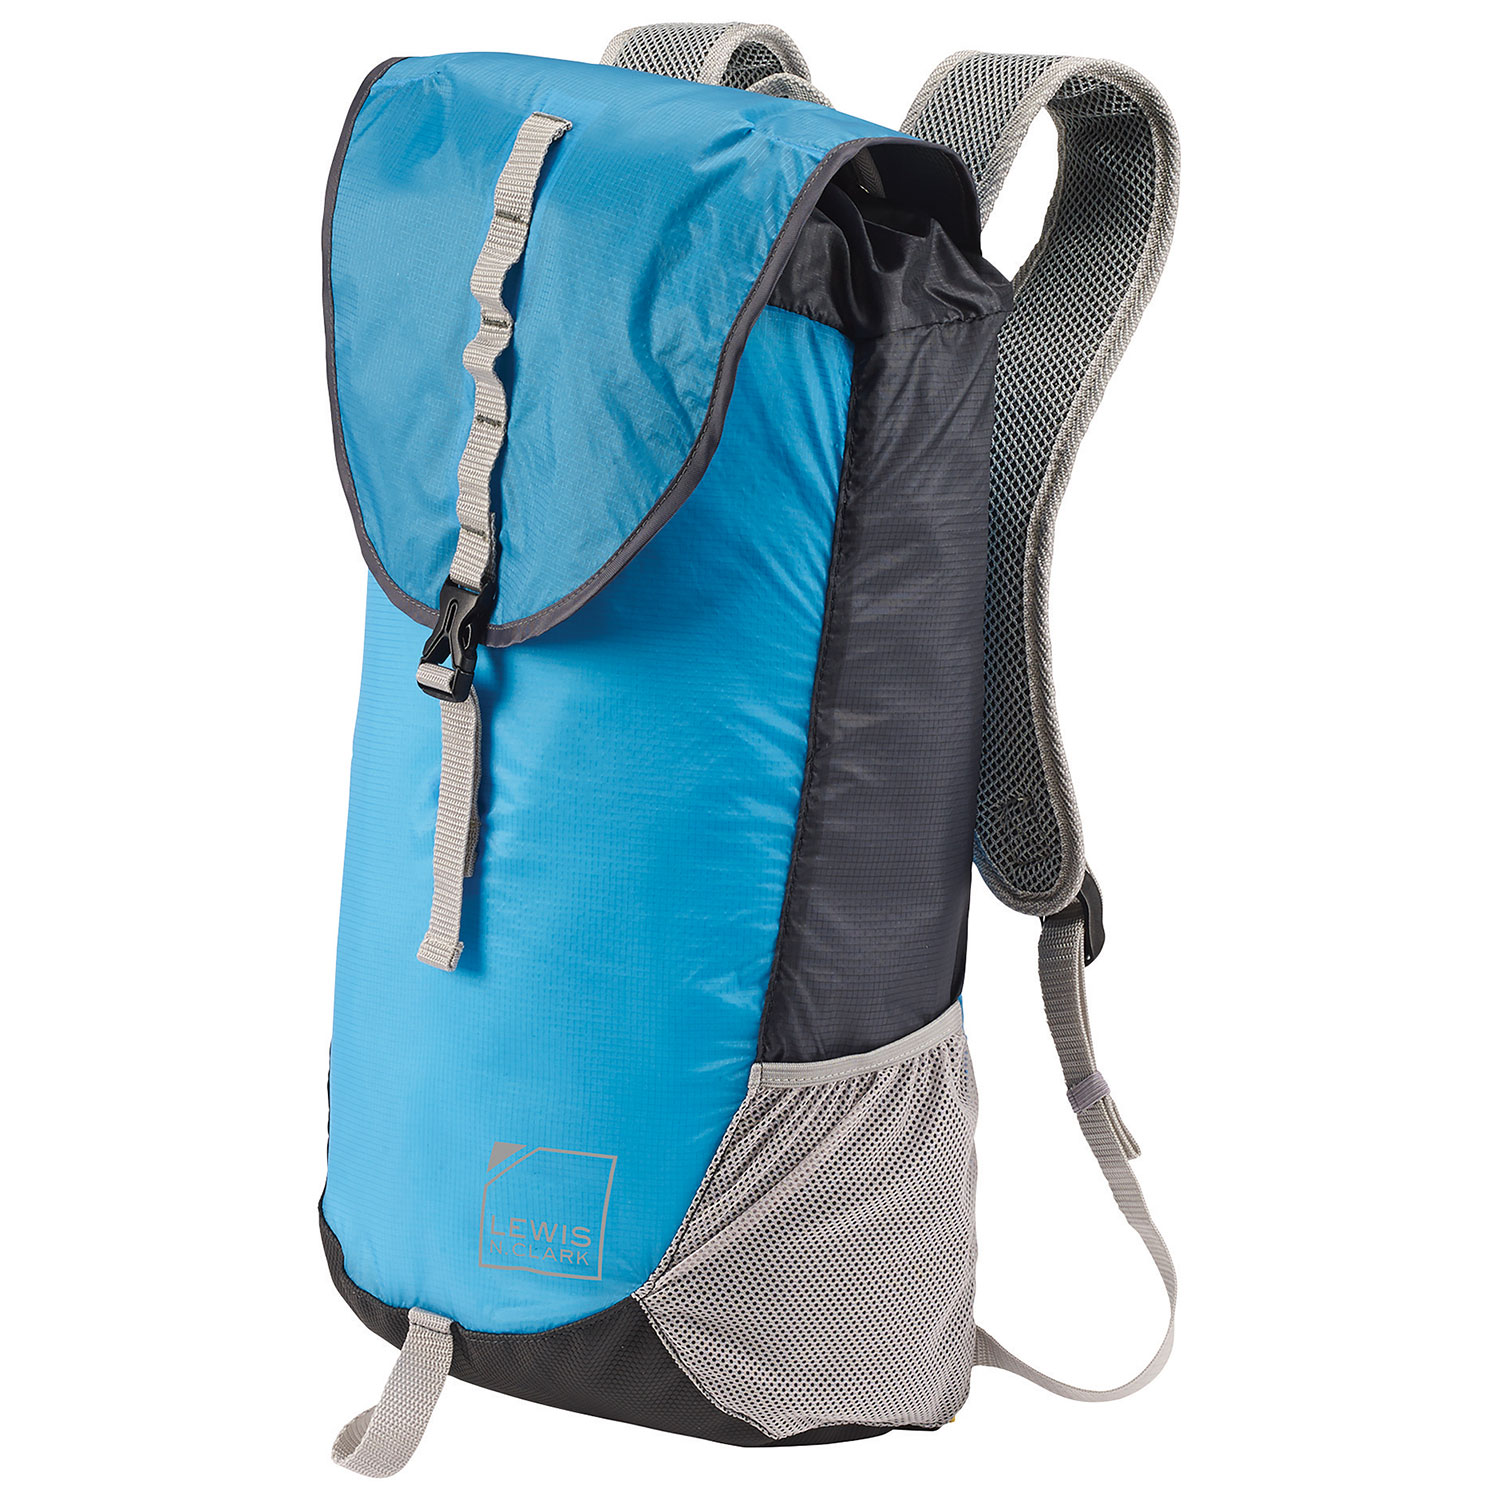 Final Clearance Lewis N. Clark ElectroLight Day Backpack - Bright Blue -  Online Only 7d50b7c9fa